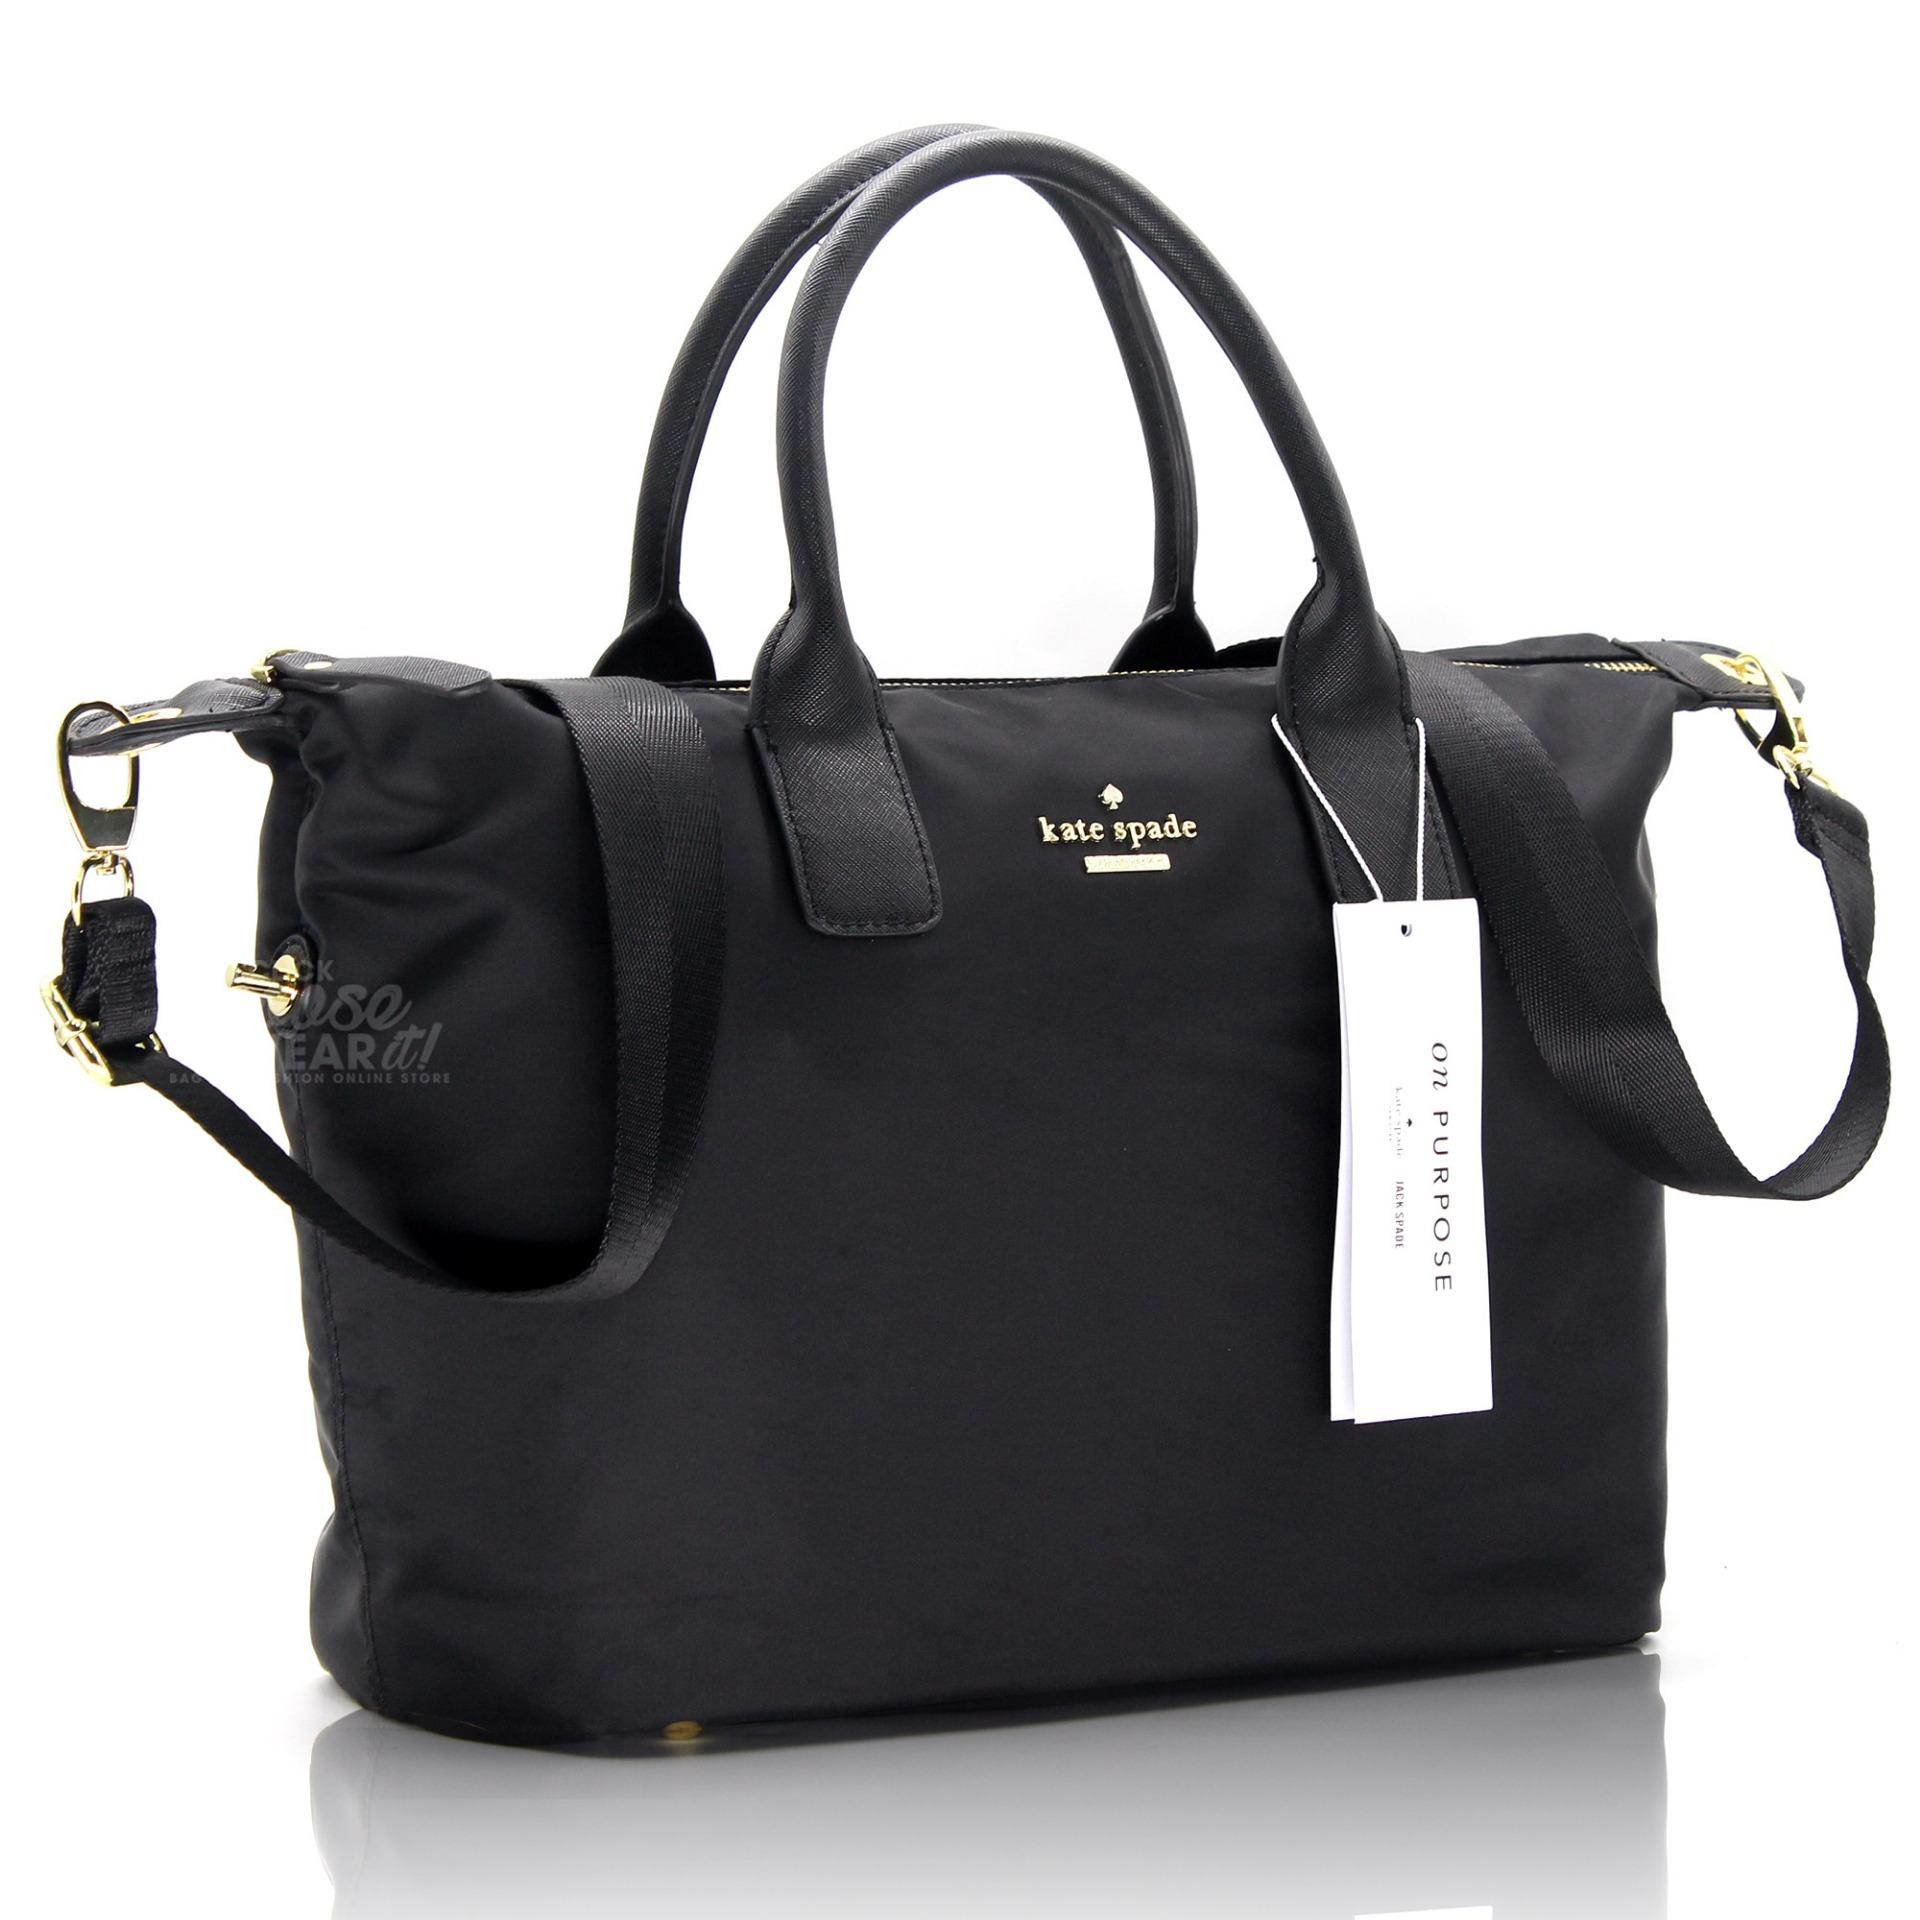 Authentic Kate Spade Classic Weekender Bag Lyla Nylon Tote Black